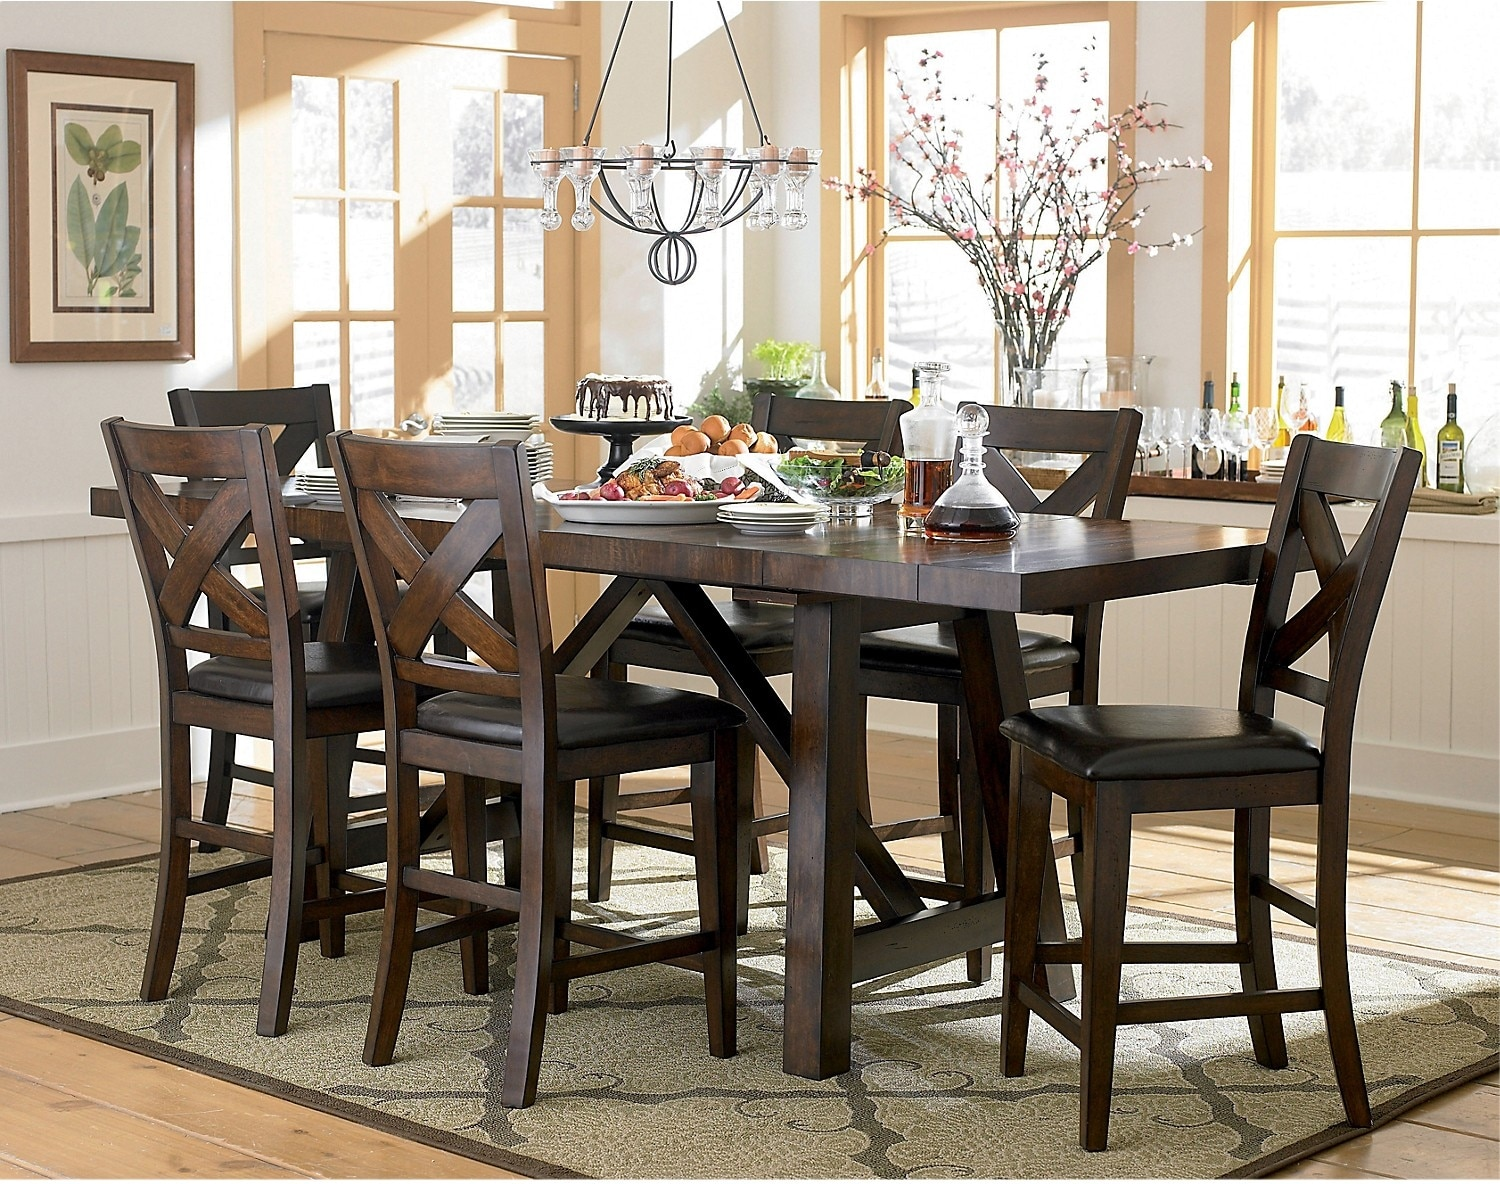 Dining Room Furniture - Adara 7 Piece Dining Package